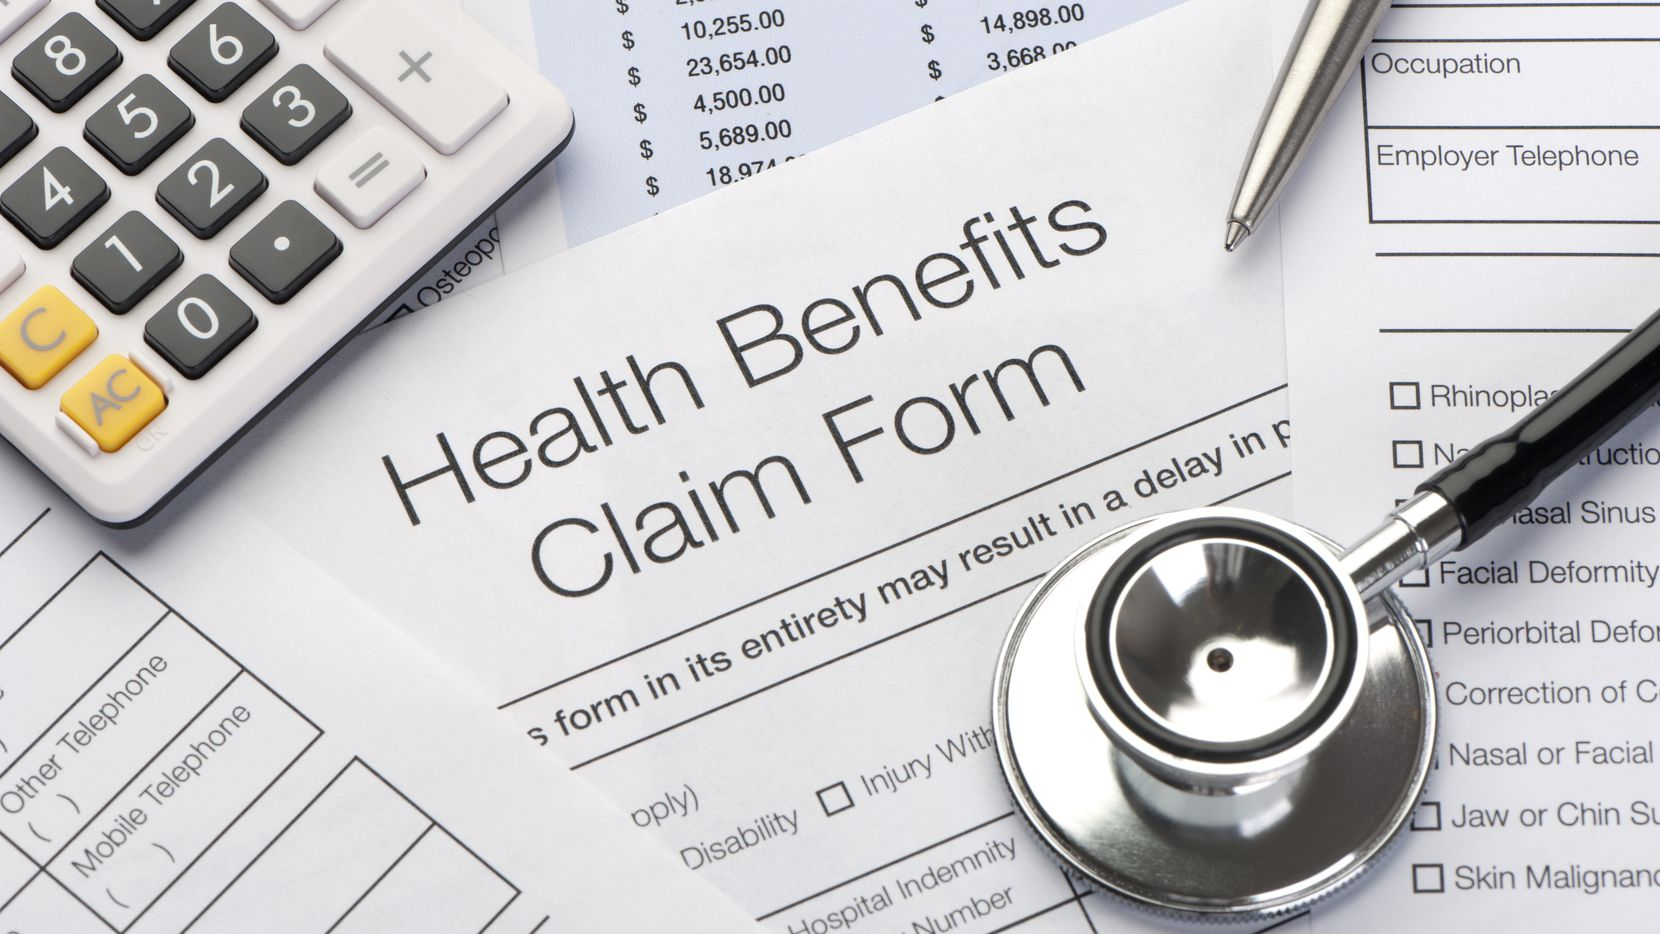 Close up a Health benefits claim form with calculator, pen and stethoscope